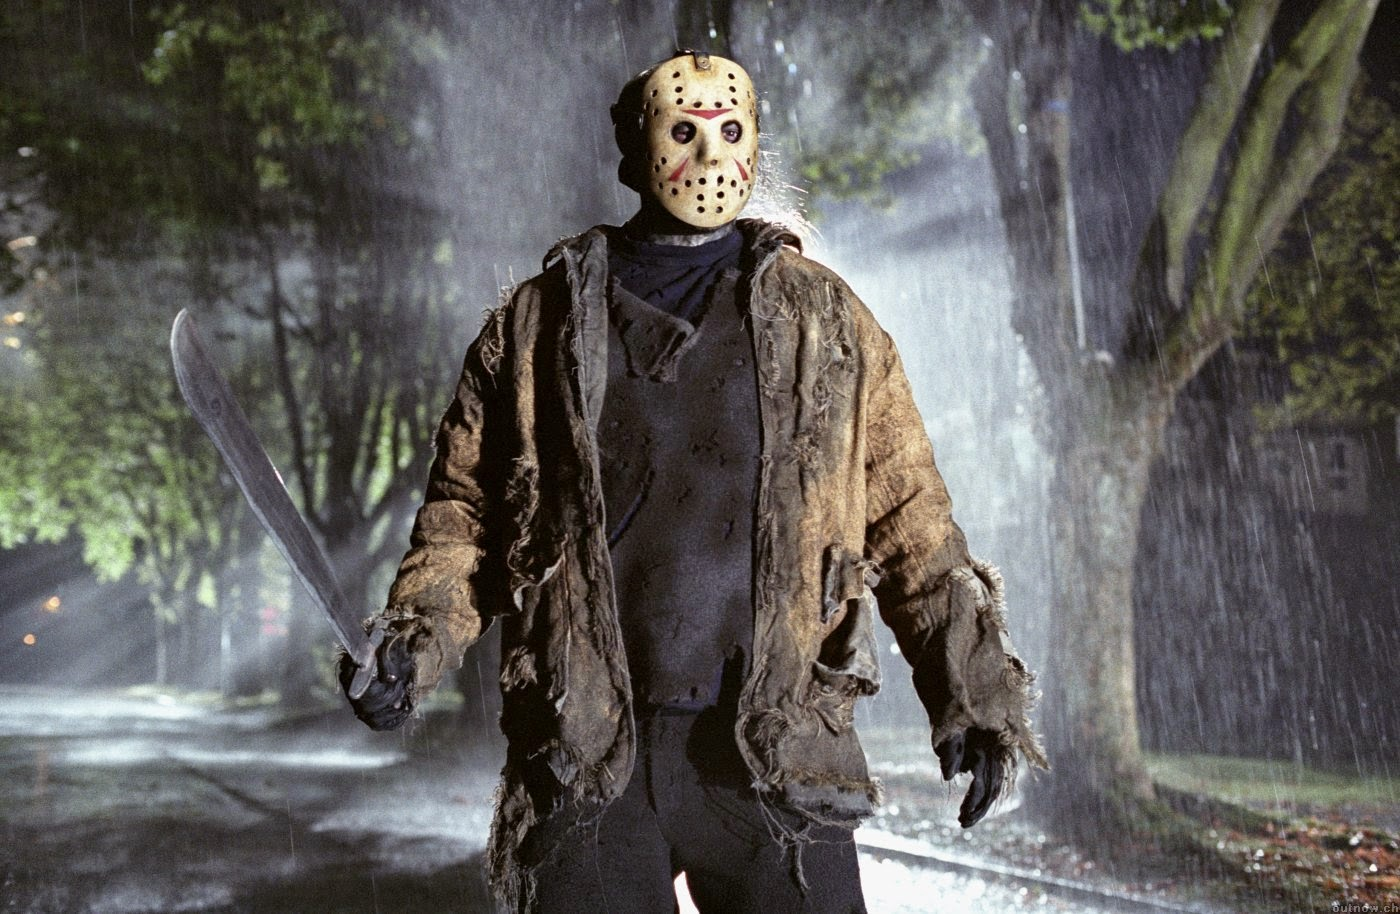 Jason(Friday the 13th)